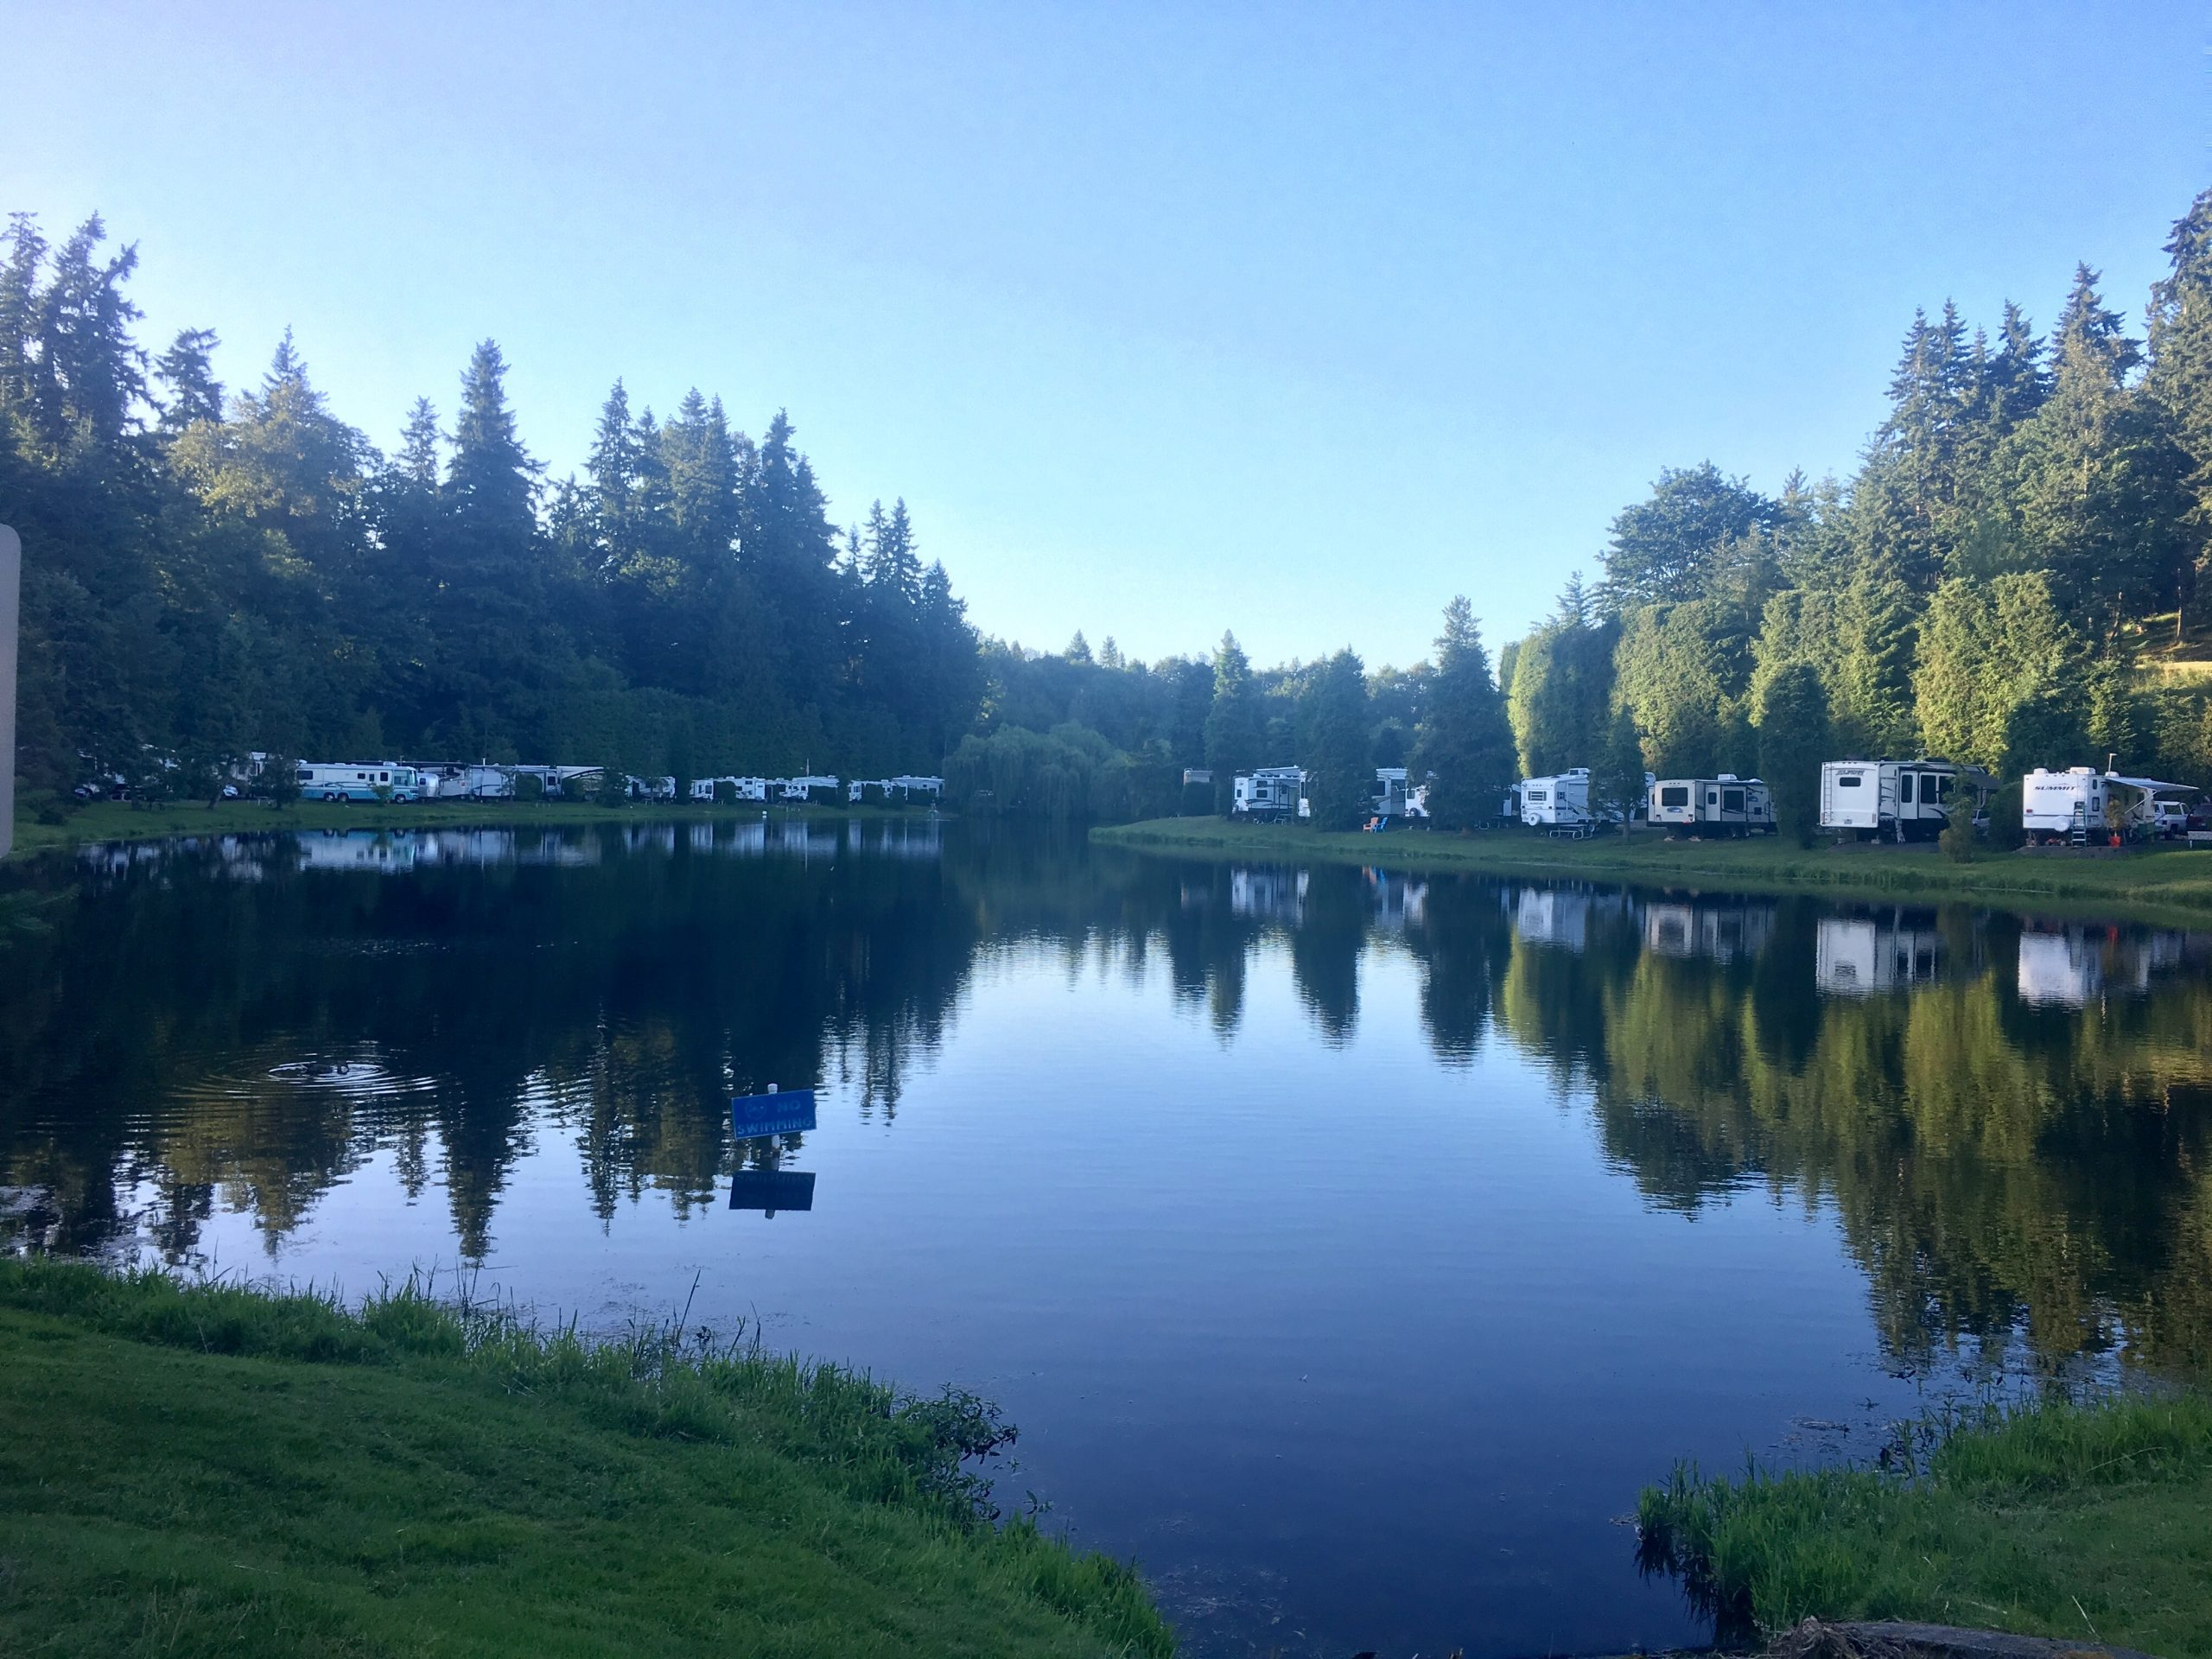 Small Lake in wooded area with RVs parked around it.